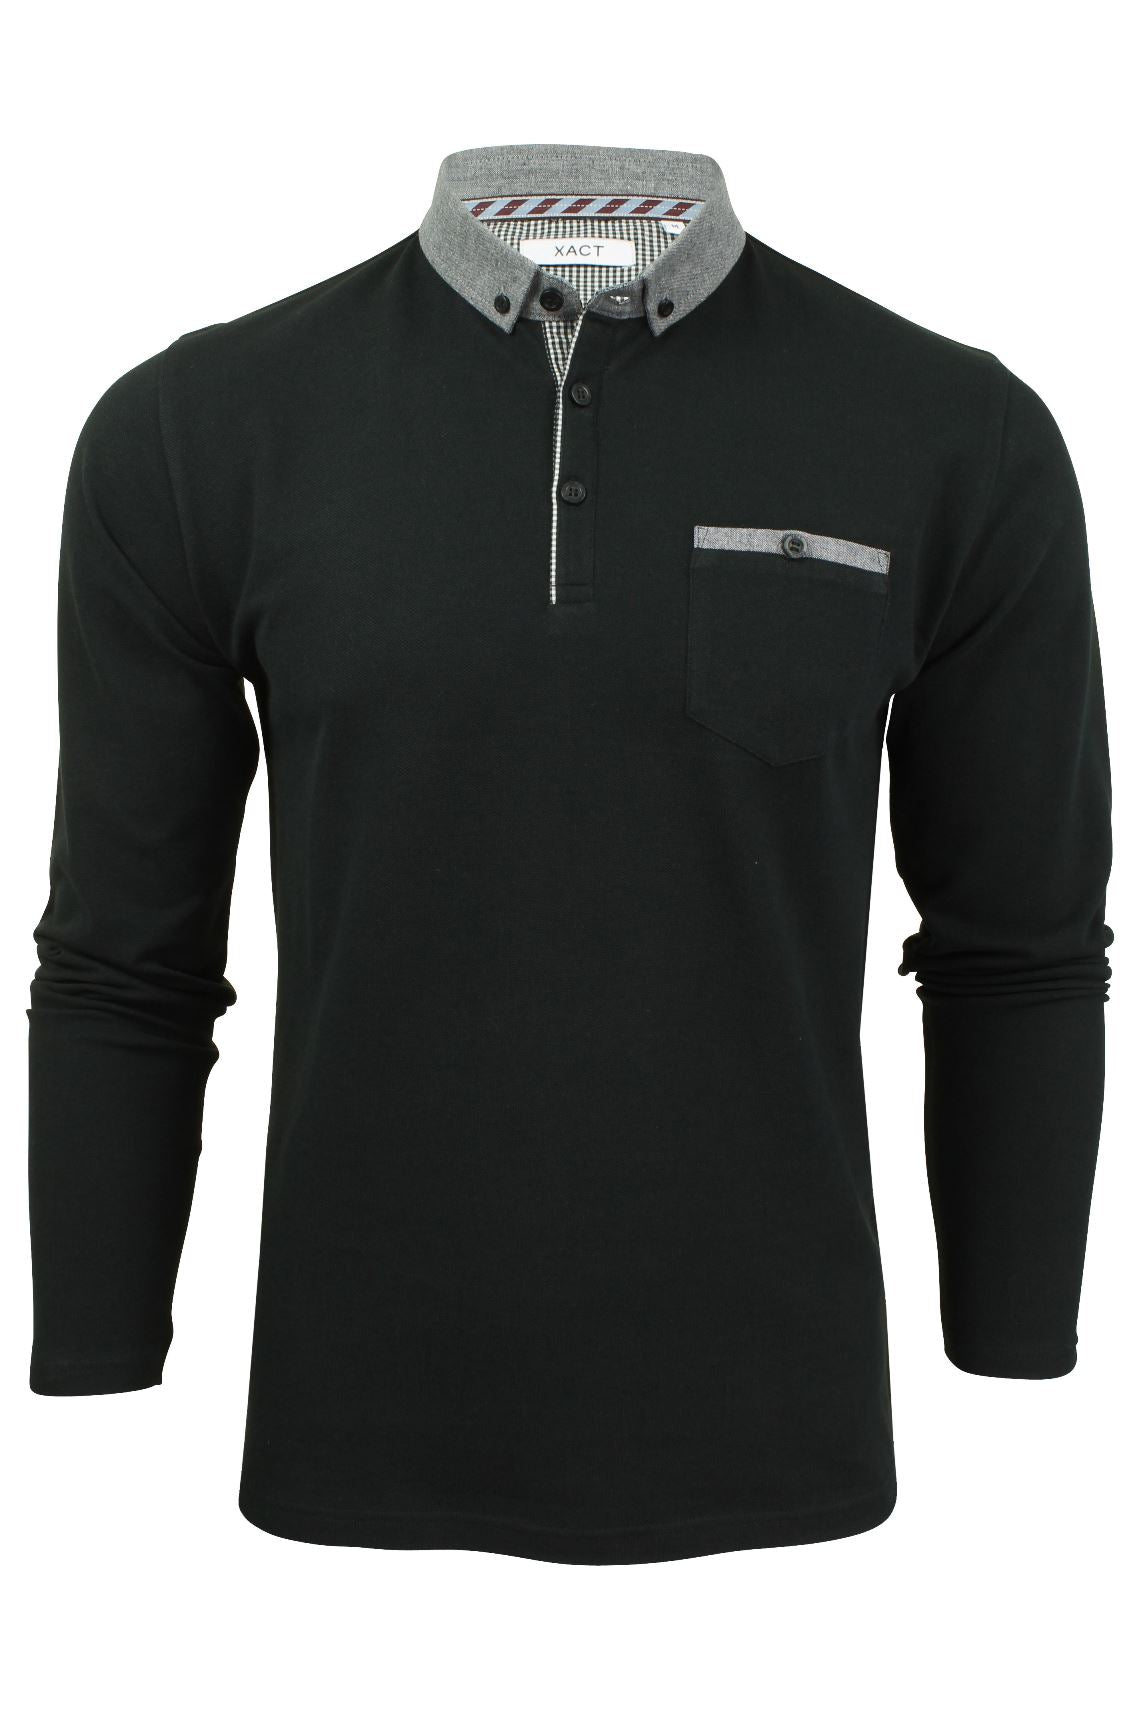 Mens Long Sleeved Button Down Collar Polo T-Shirt by Xact_01_Xp1026_Black